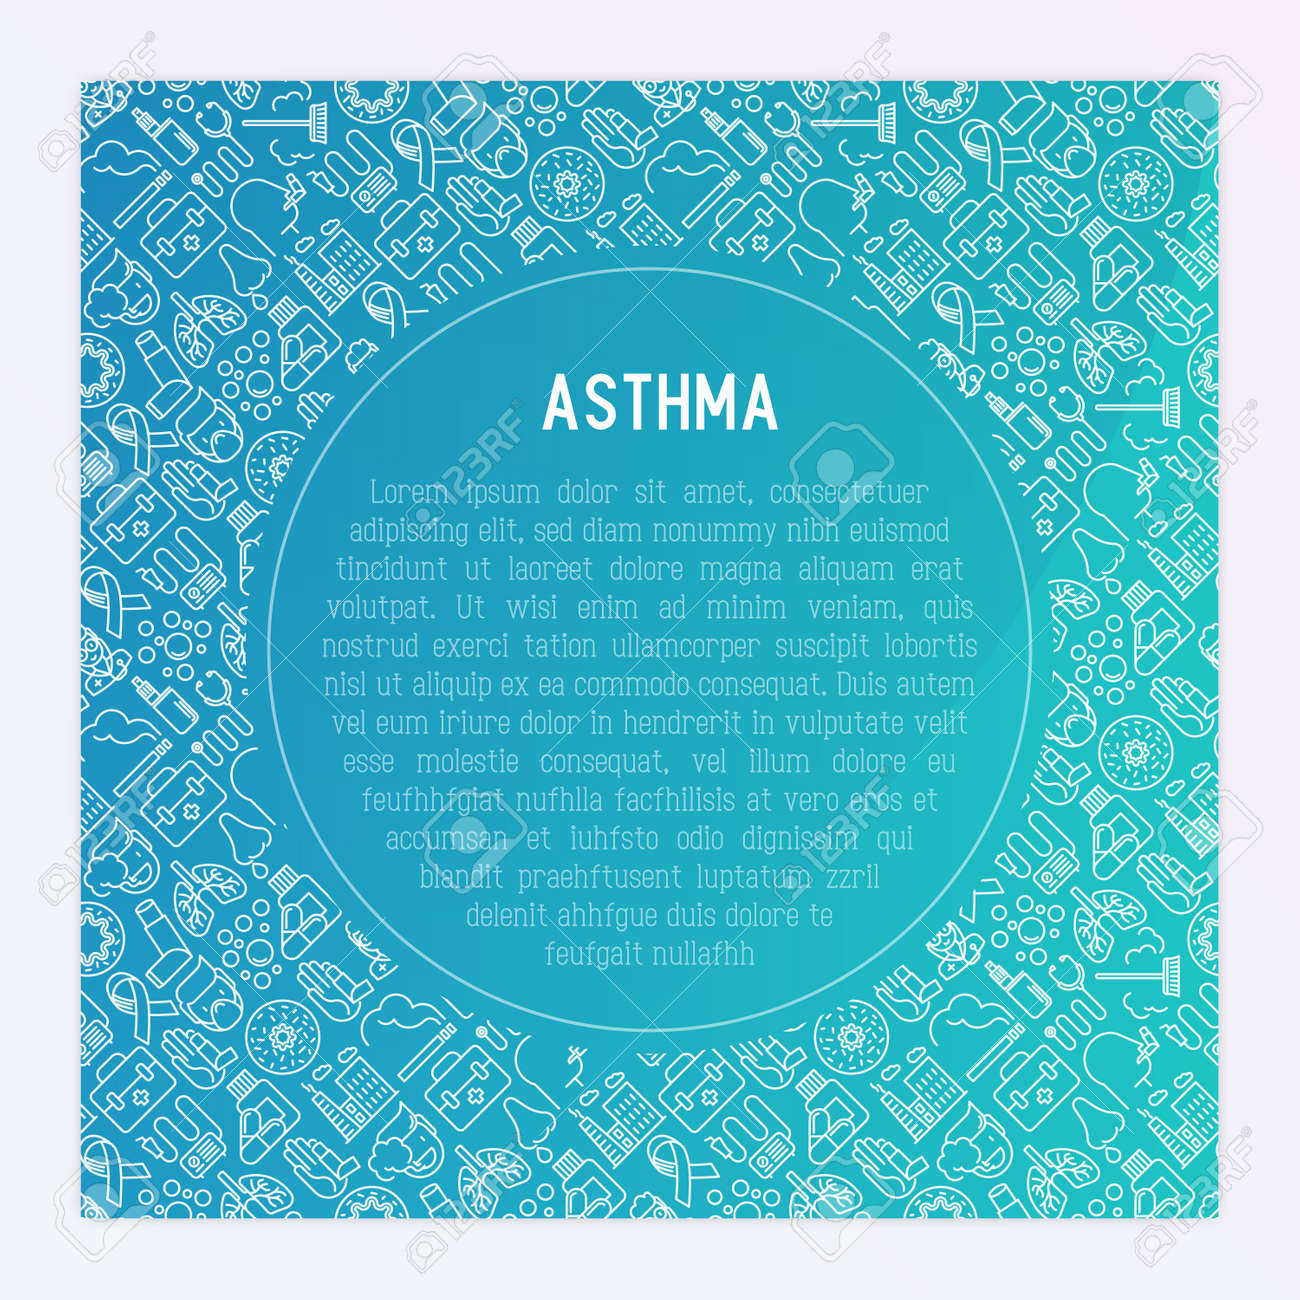 World asthma day concept with thin line icons: air pollution, smoking, respirator, therapist, inhaler, bronchi, allergy symptoms and allergens. Vector illustration for banner, web page, print media. - 101139052